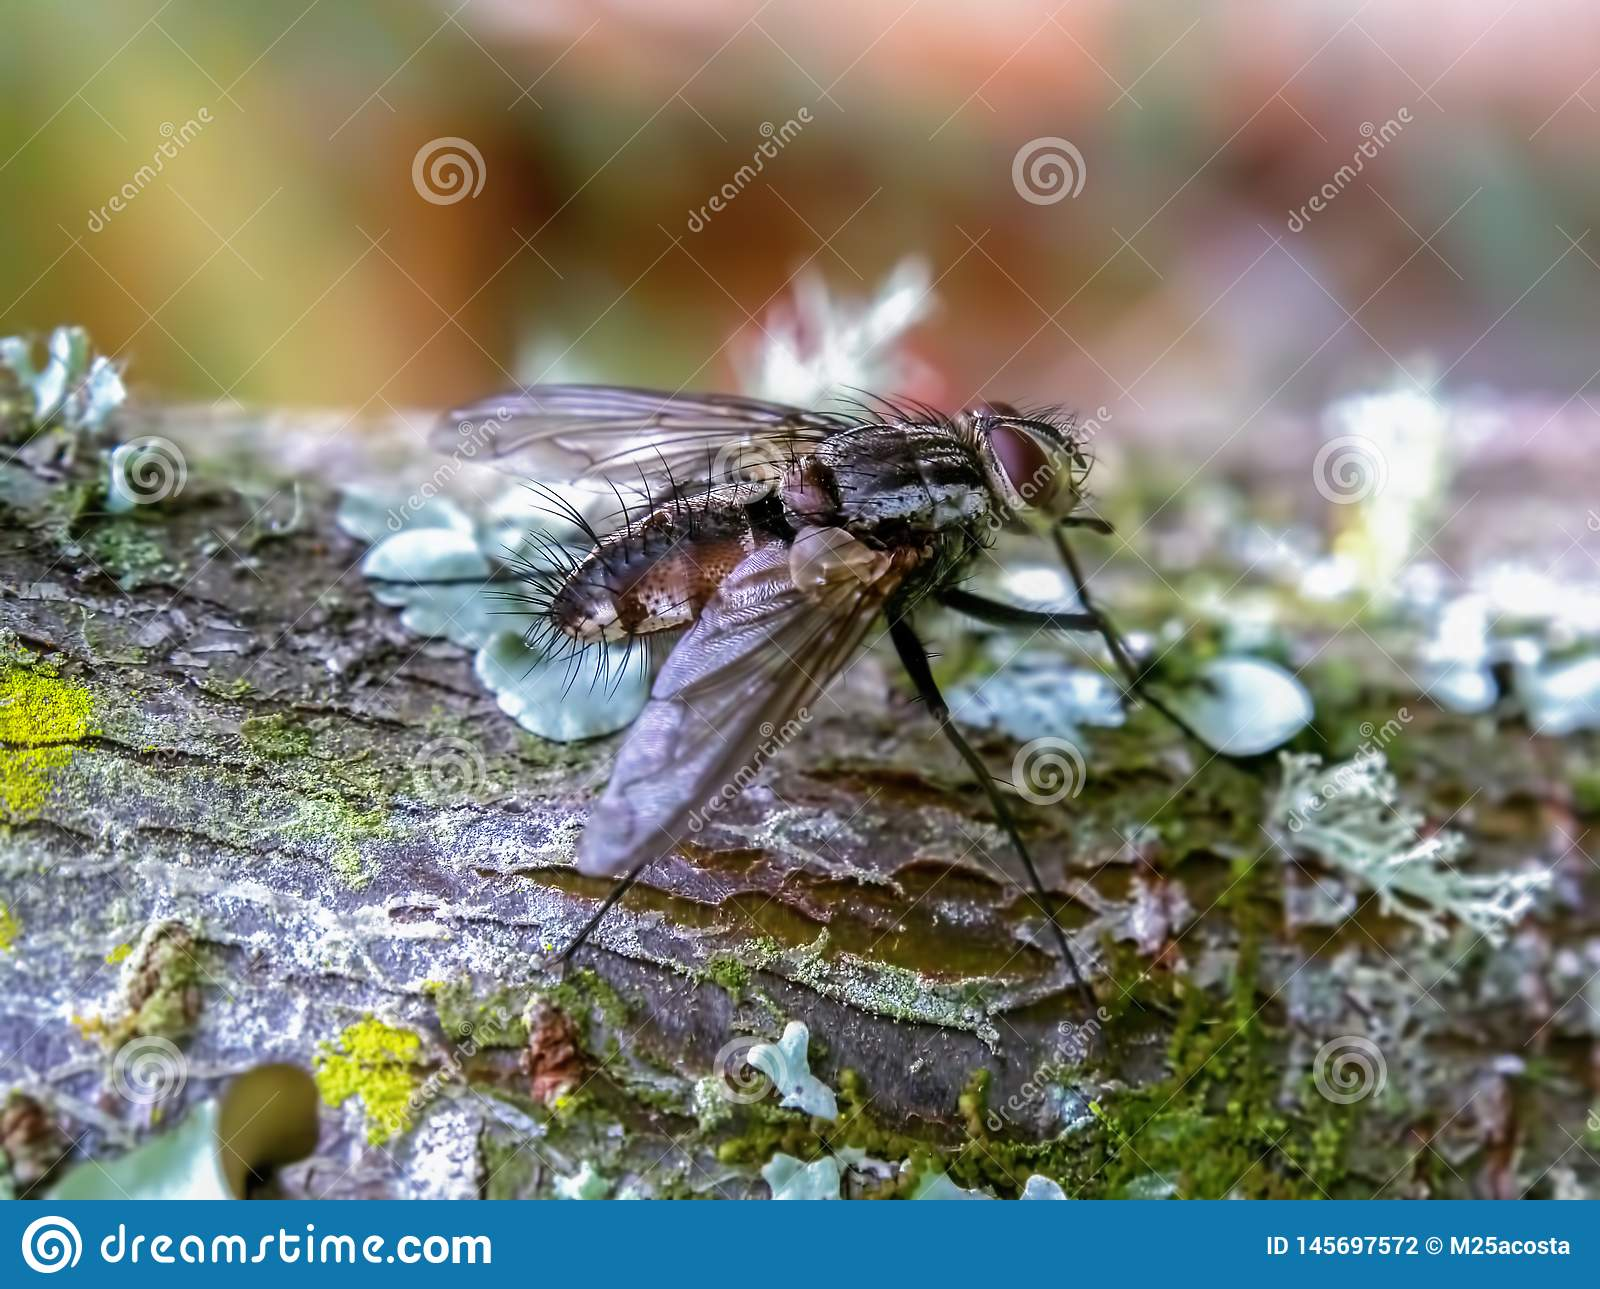 Stable fly standing on a tree branch